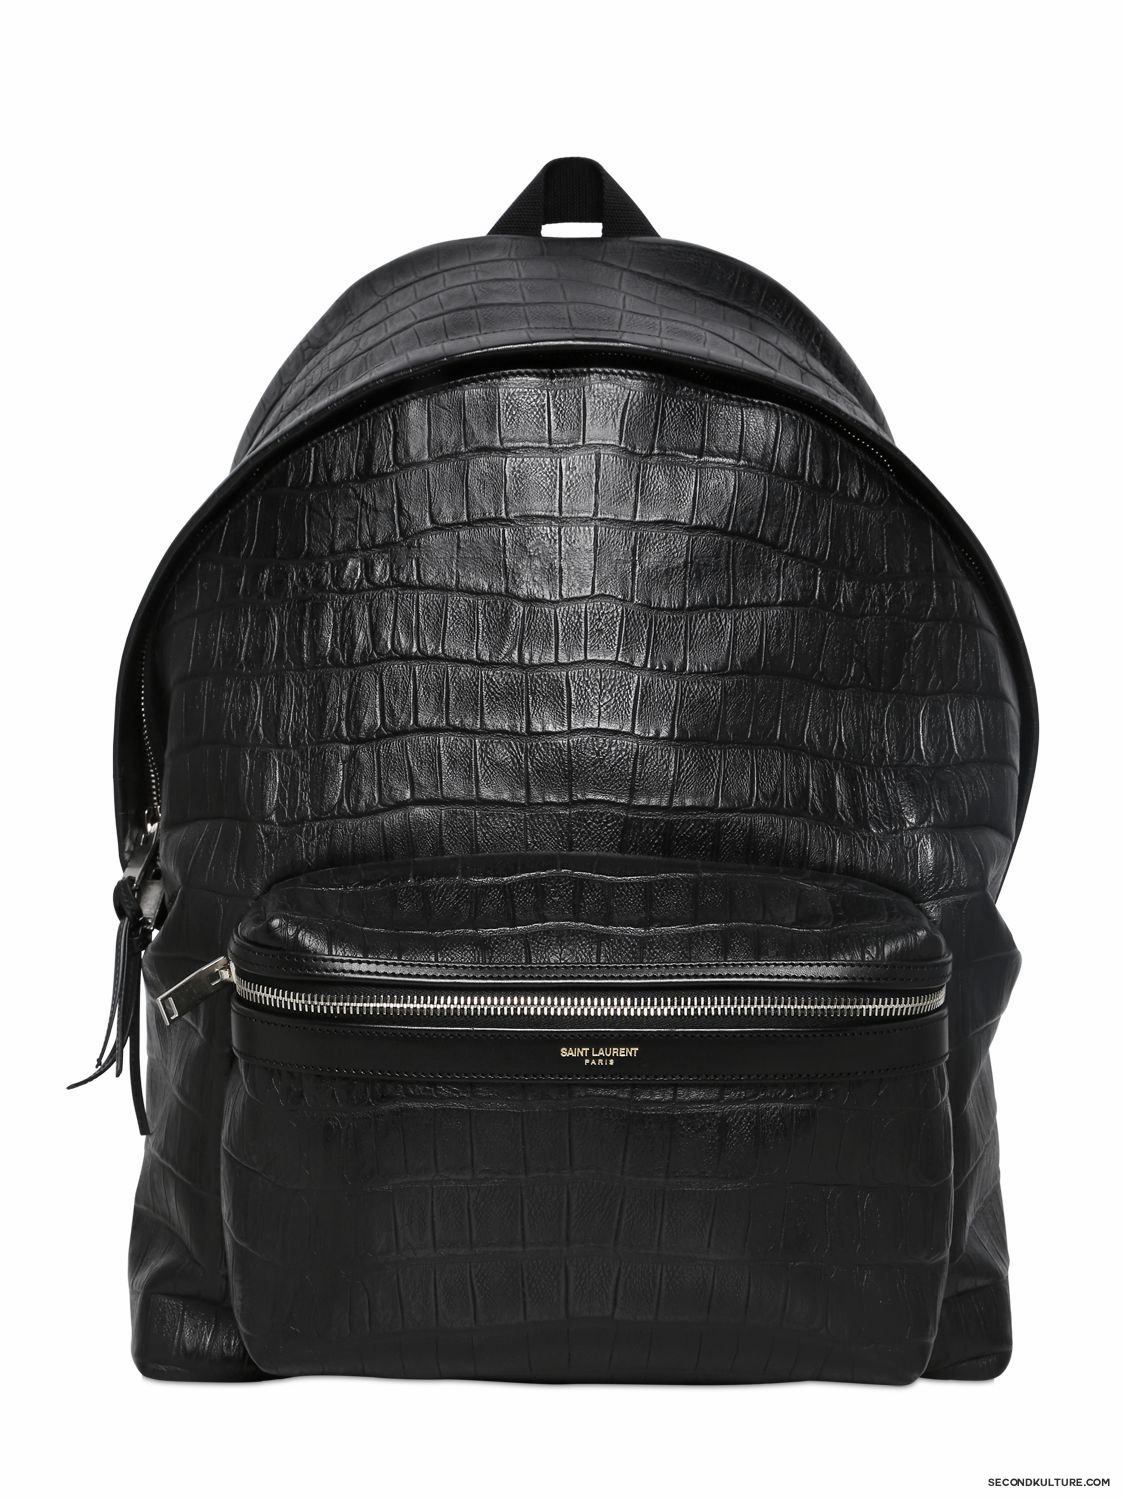 Saint-Laurent-Black-Croc-Embossed-Leather-Backpack-Fall-Winter-2015-1